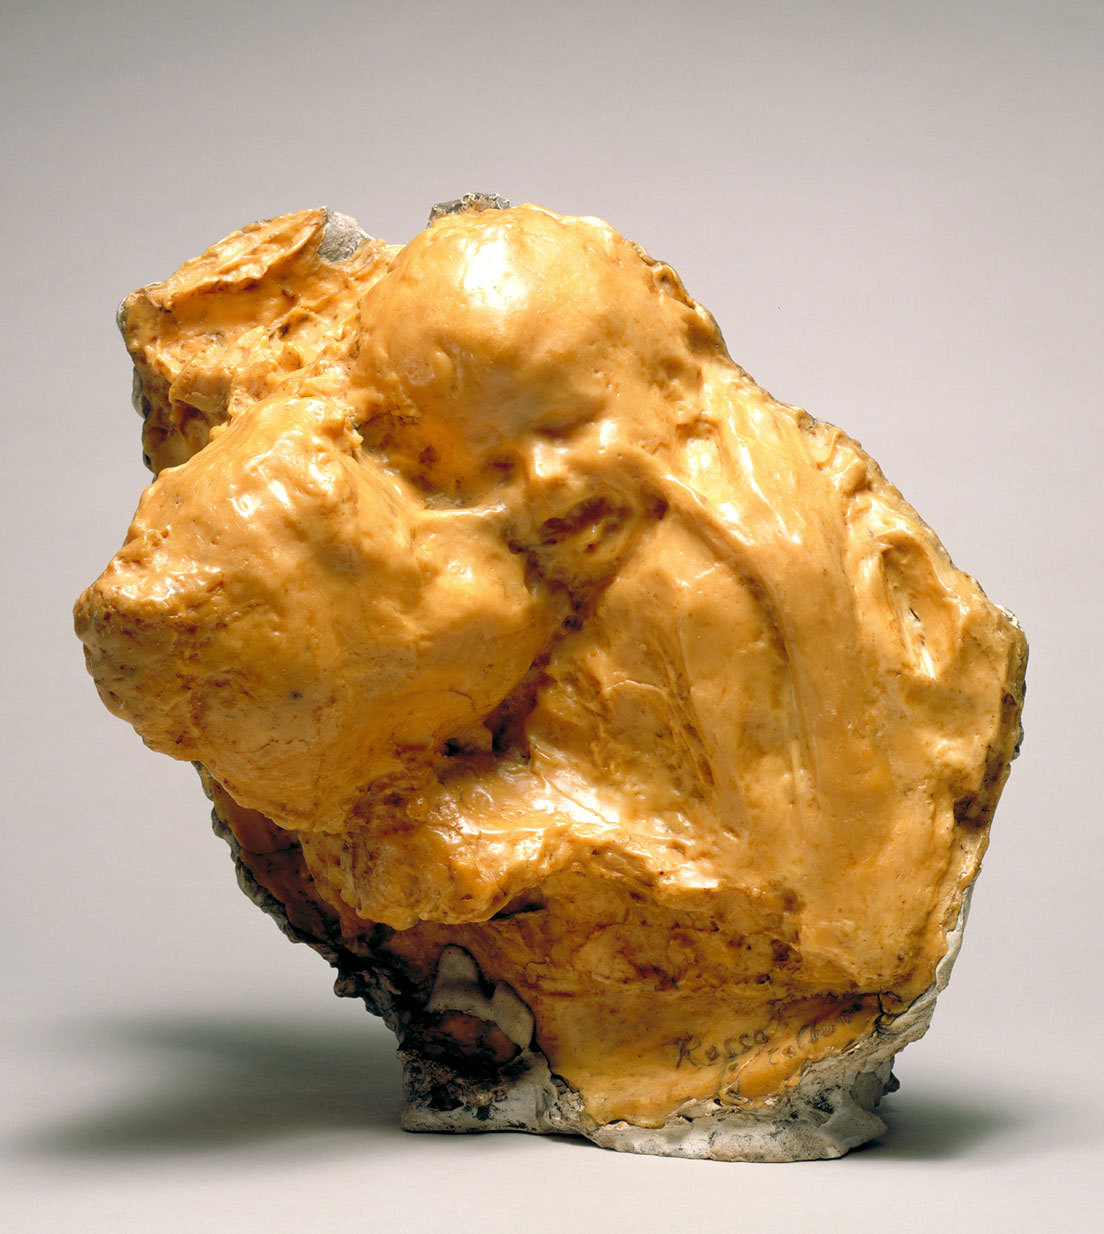 Medardo Rosso: The Golden Age.1886-87Wax over Plaster